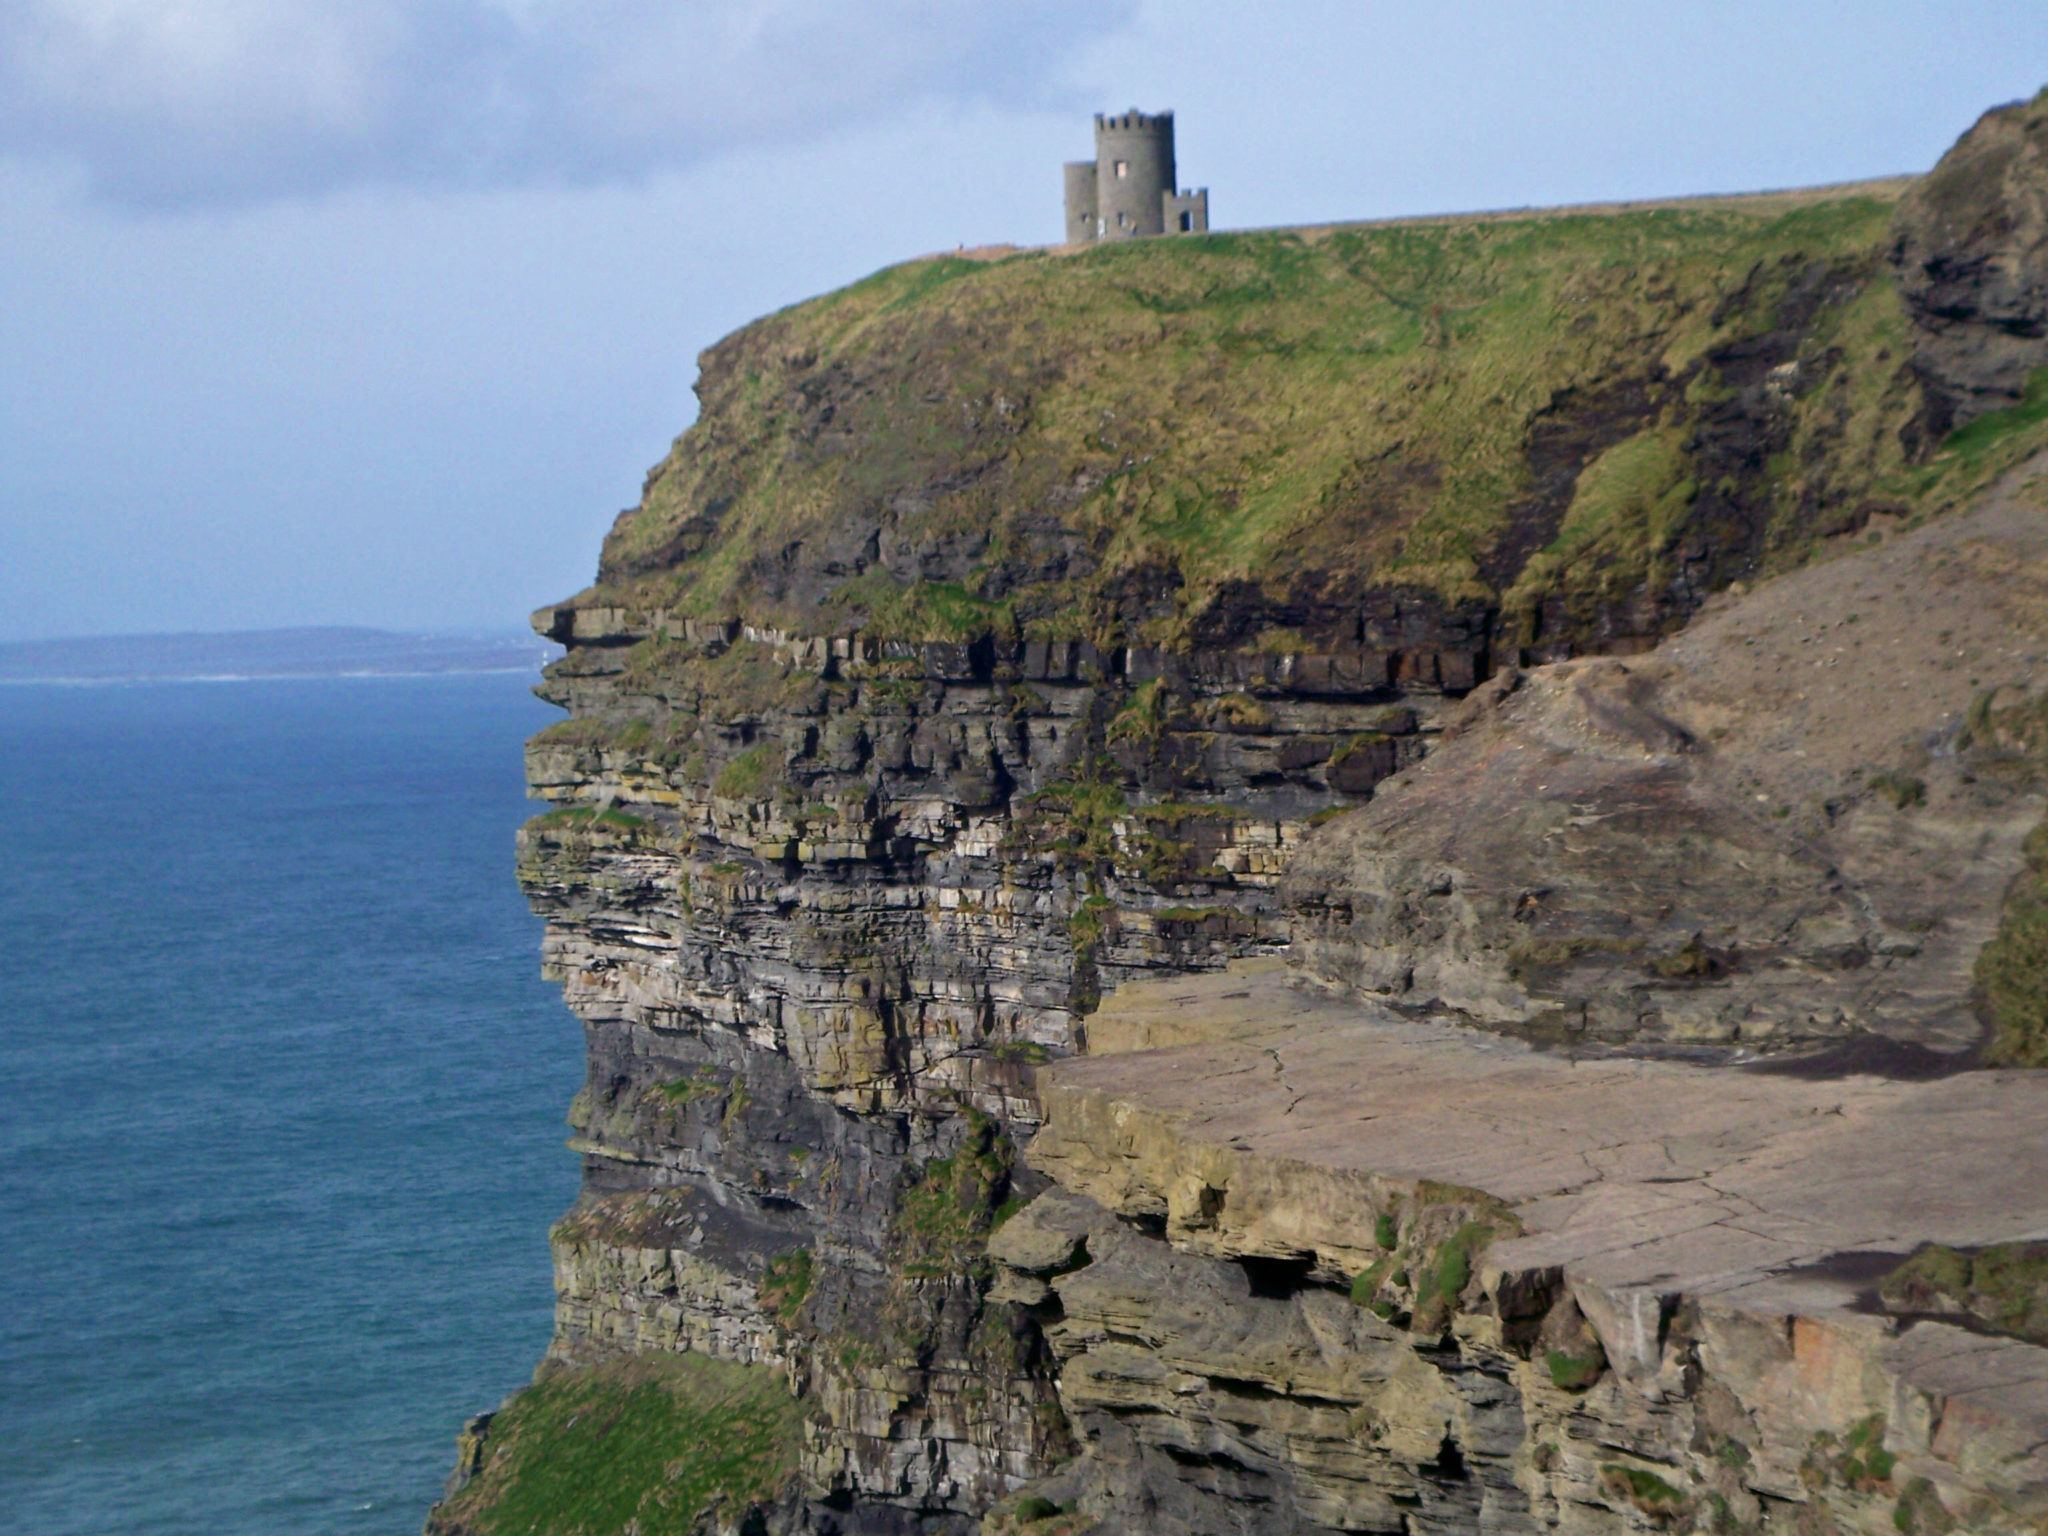 If you have a fear of heights, Ireland's Cliffs of Moher can be a difficult place to visit.